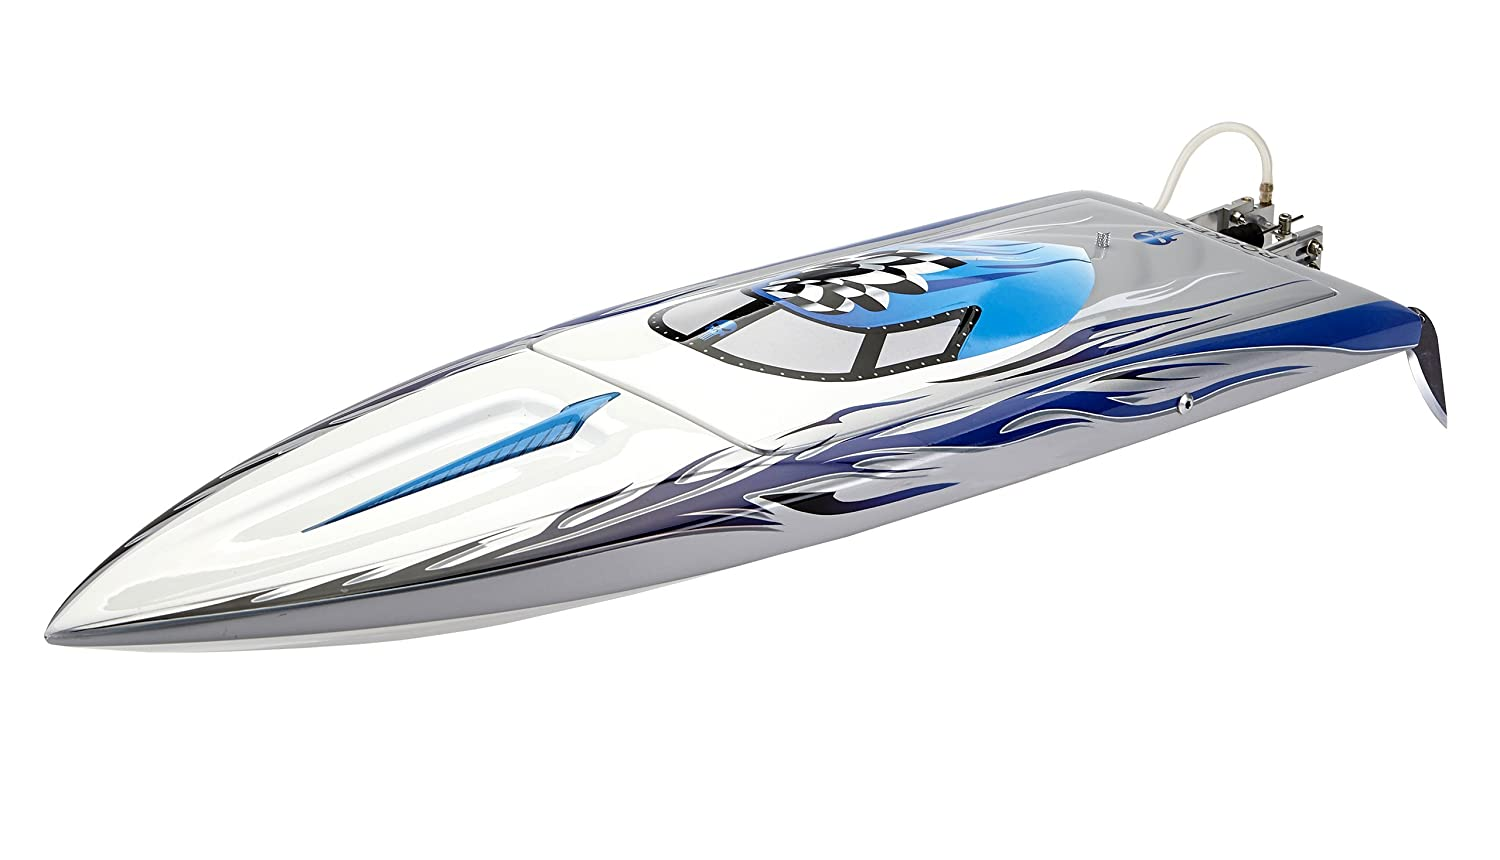 Rocket 65 Cm Amewi 26046 - Rocket brushless Genesis Scheme, 650 mm, weiß